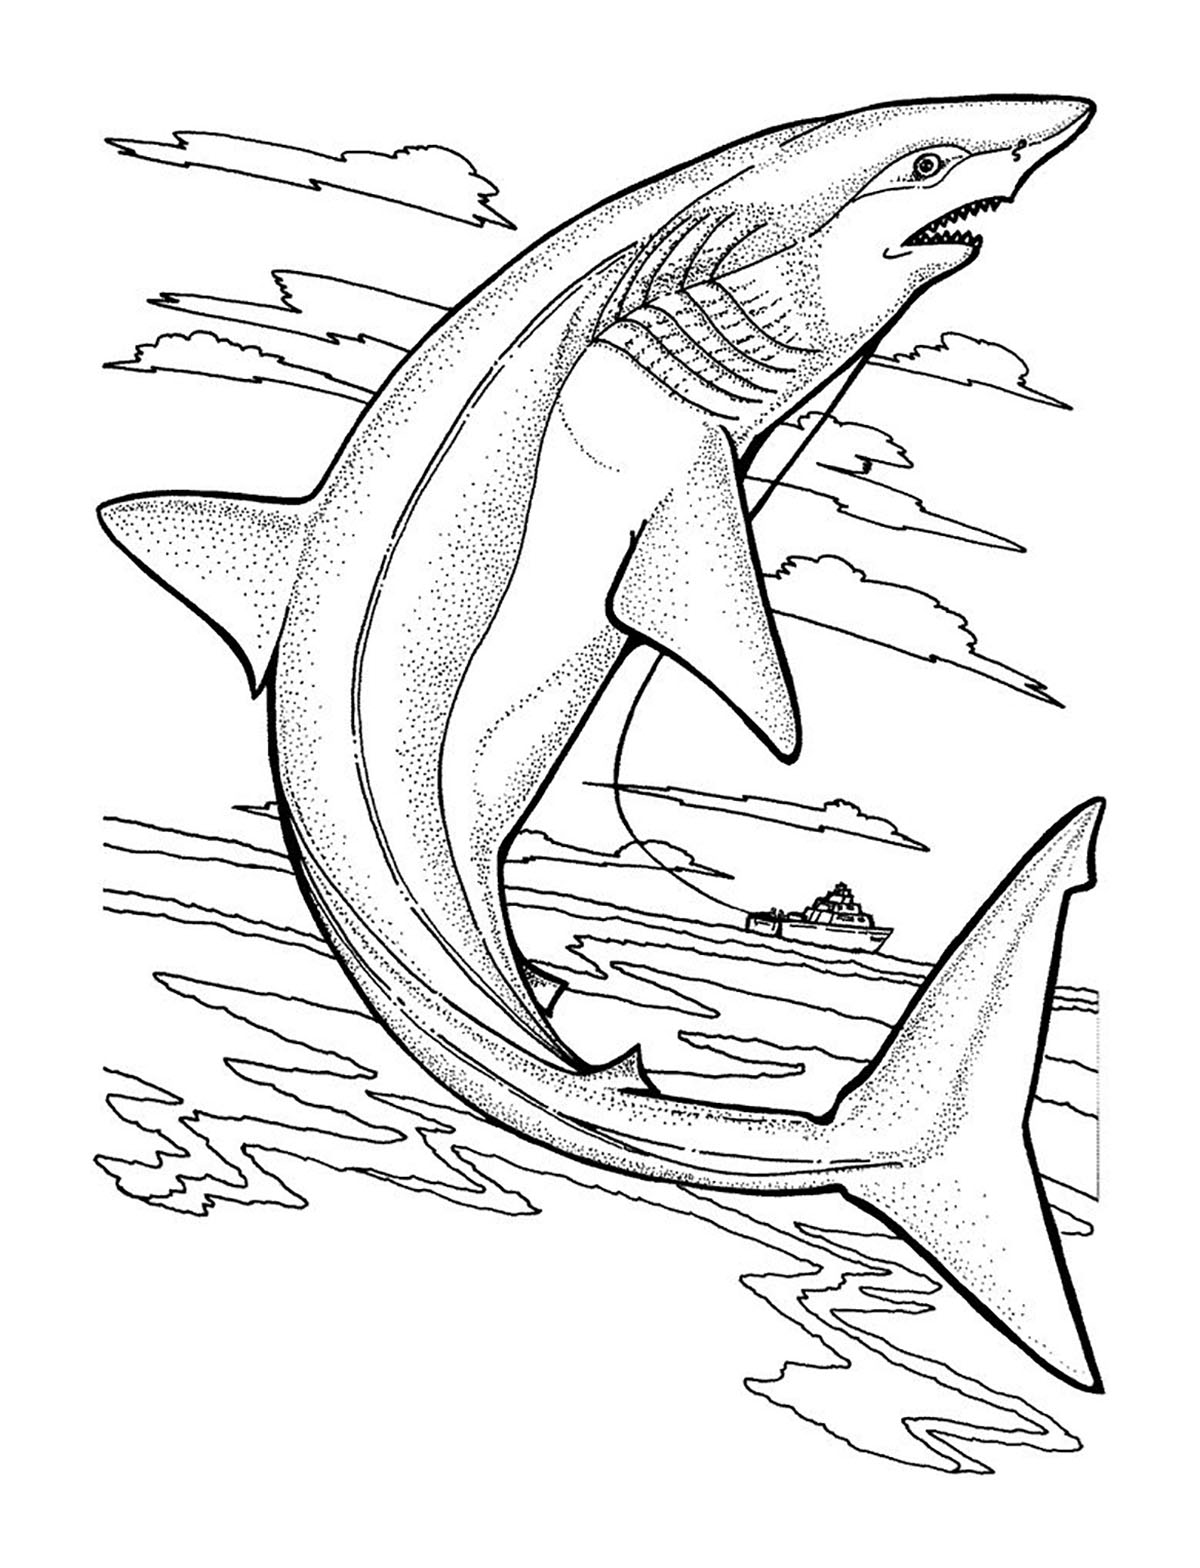 Sharks to print for free - Sharks Kids Coloring Pages